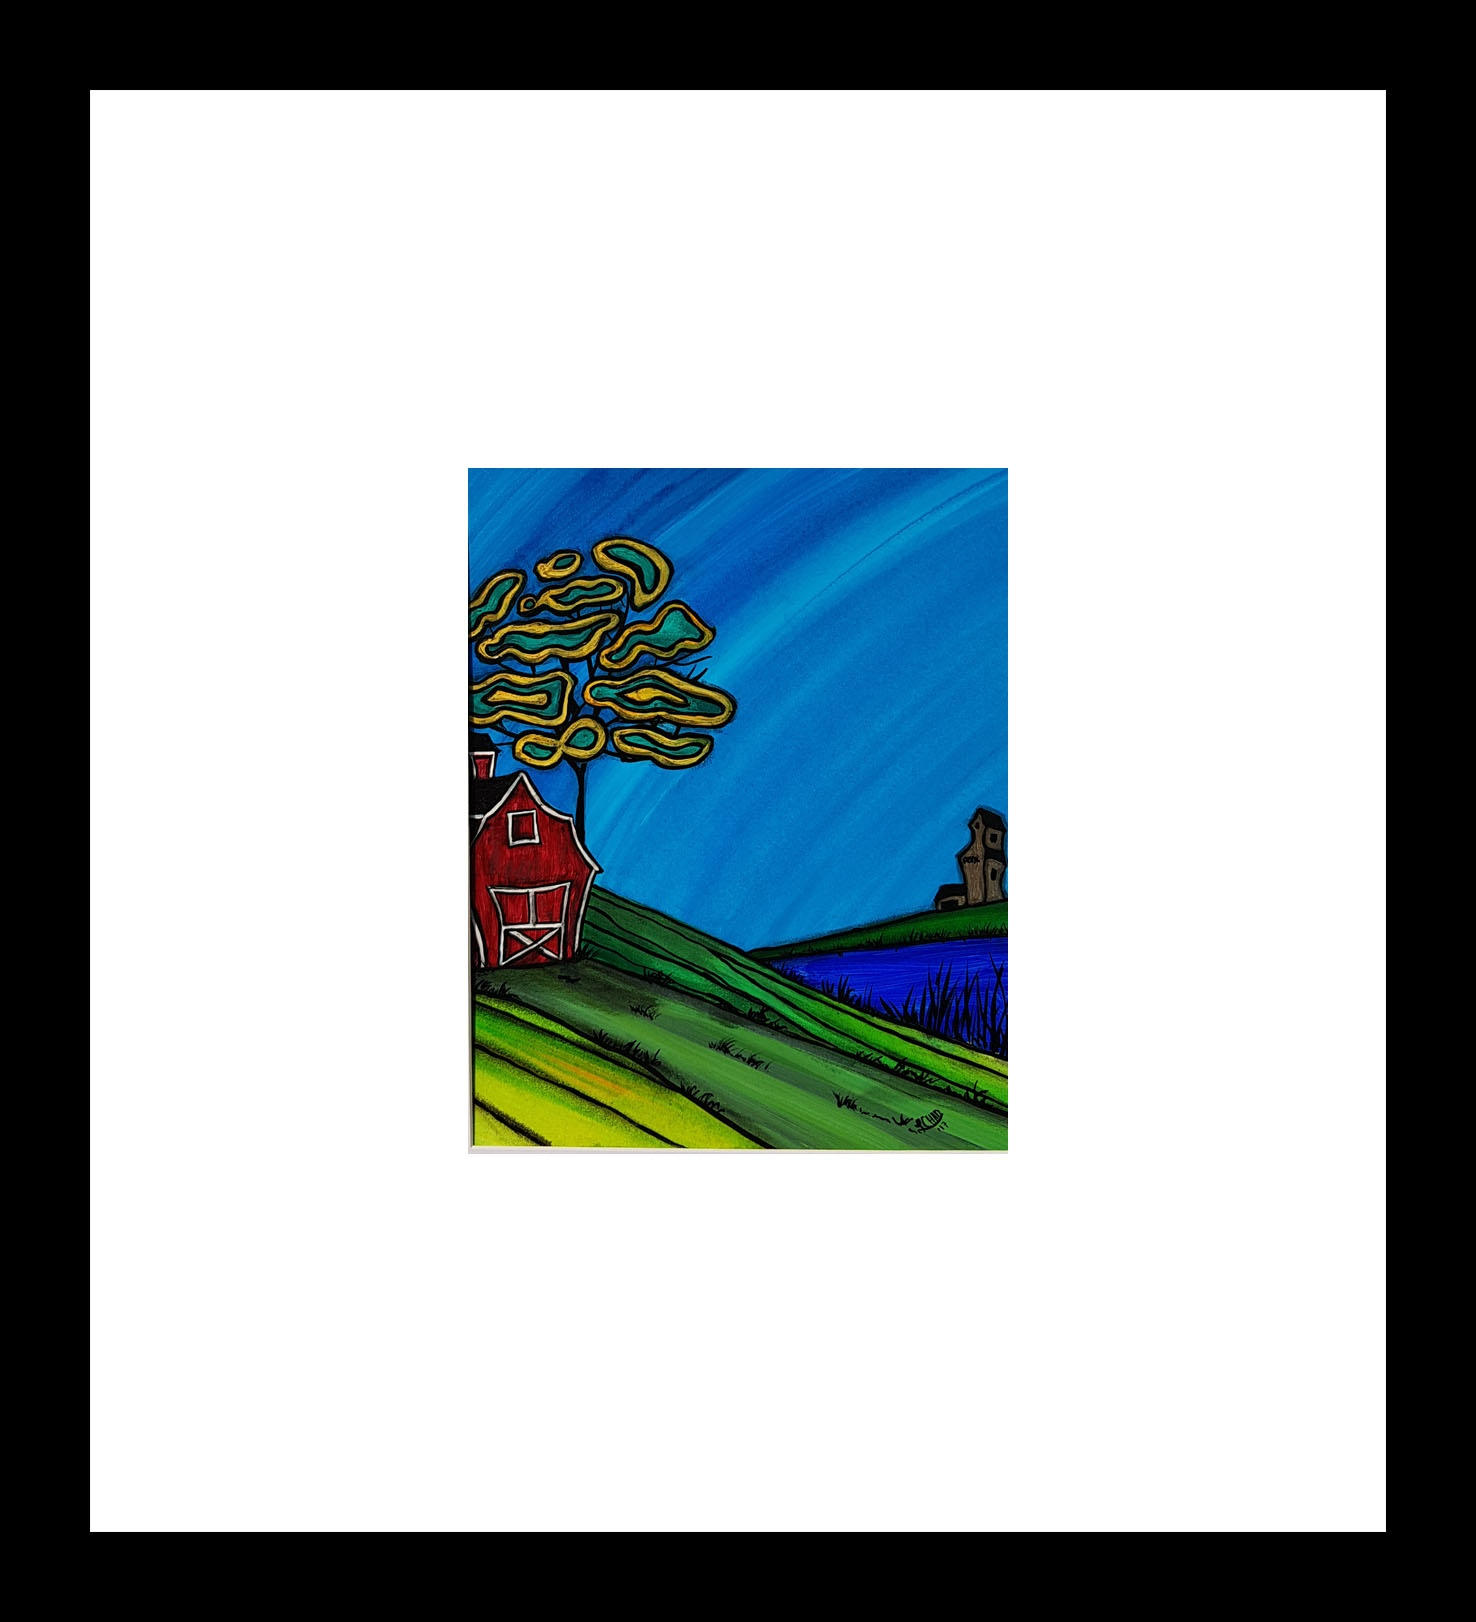 """Barn on the Hill"" [2018] Image: 7.5"" x 9.5"" Framed: 20"" x 20"" Acrylic on 246 lb. paper $200.00"